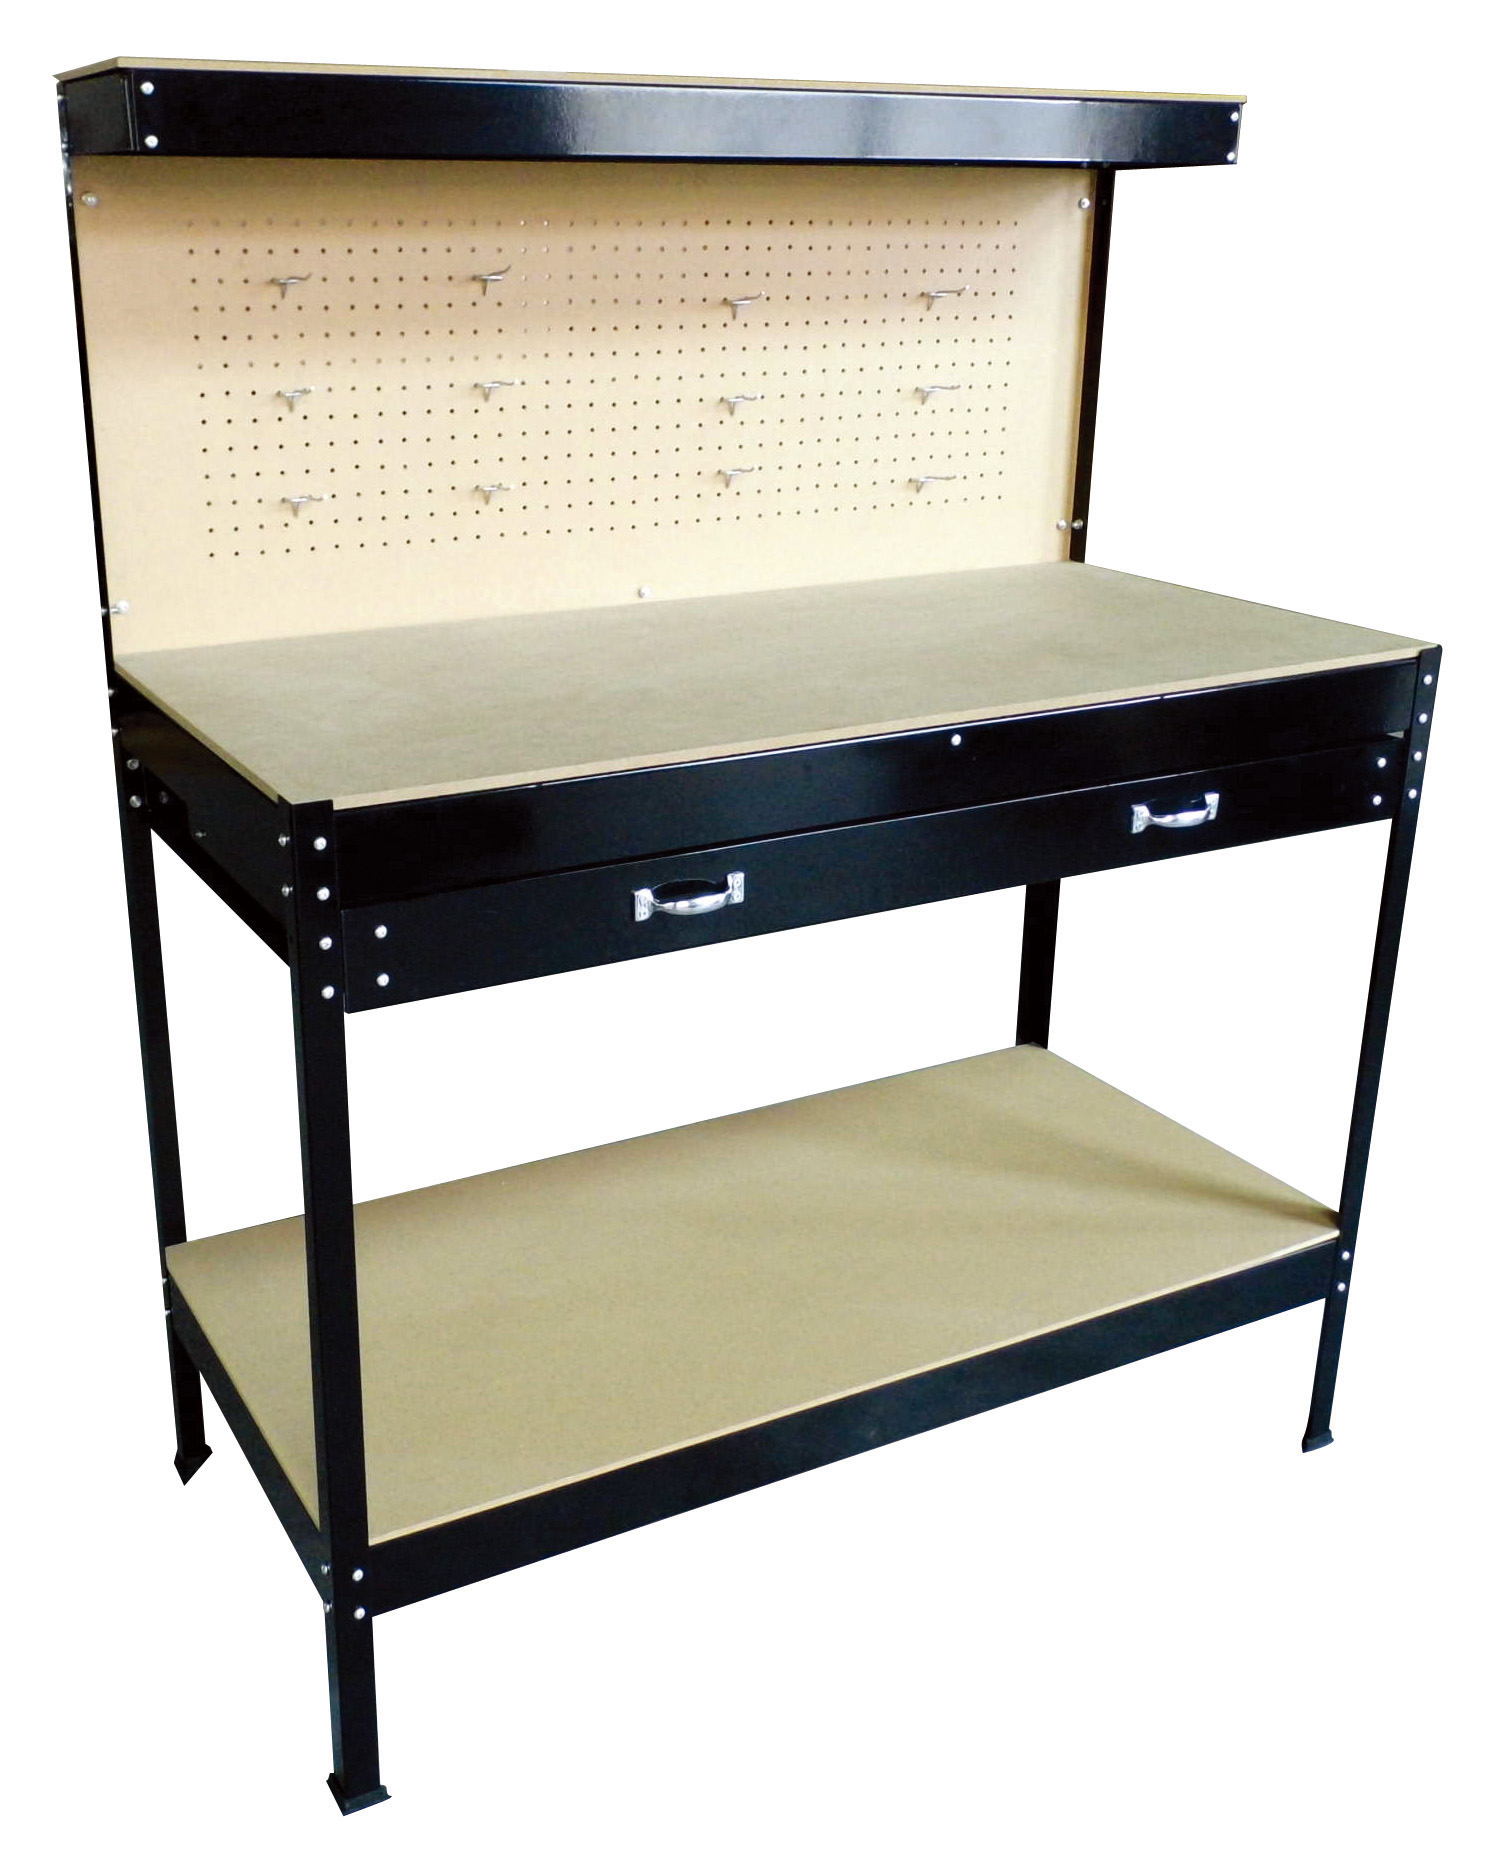 with china product drawer drawers duty heavy tool steel workbench xbuejsymyzrv cabinet metal